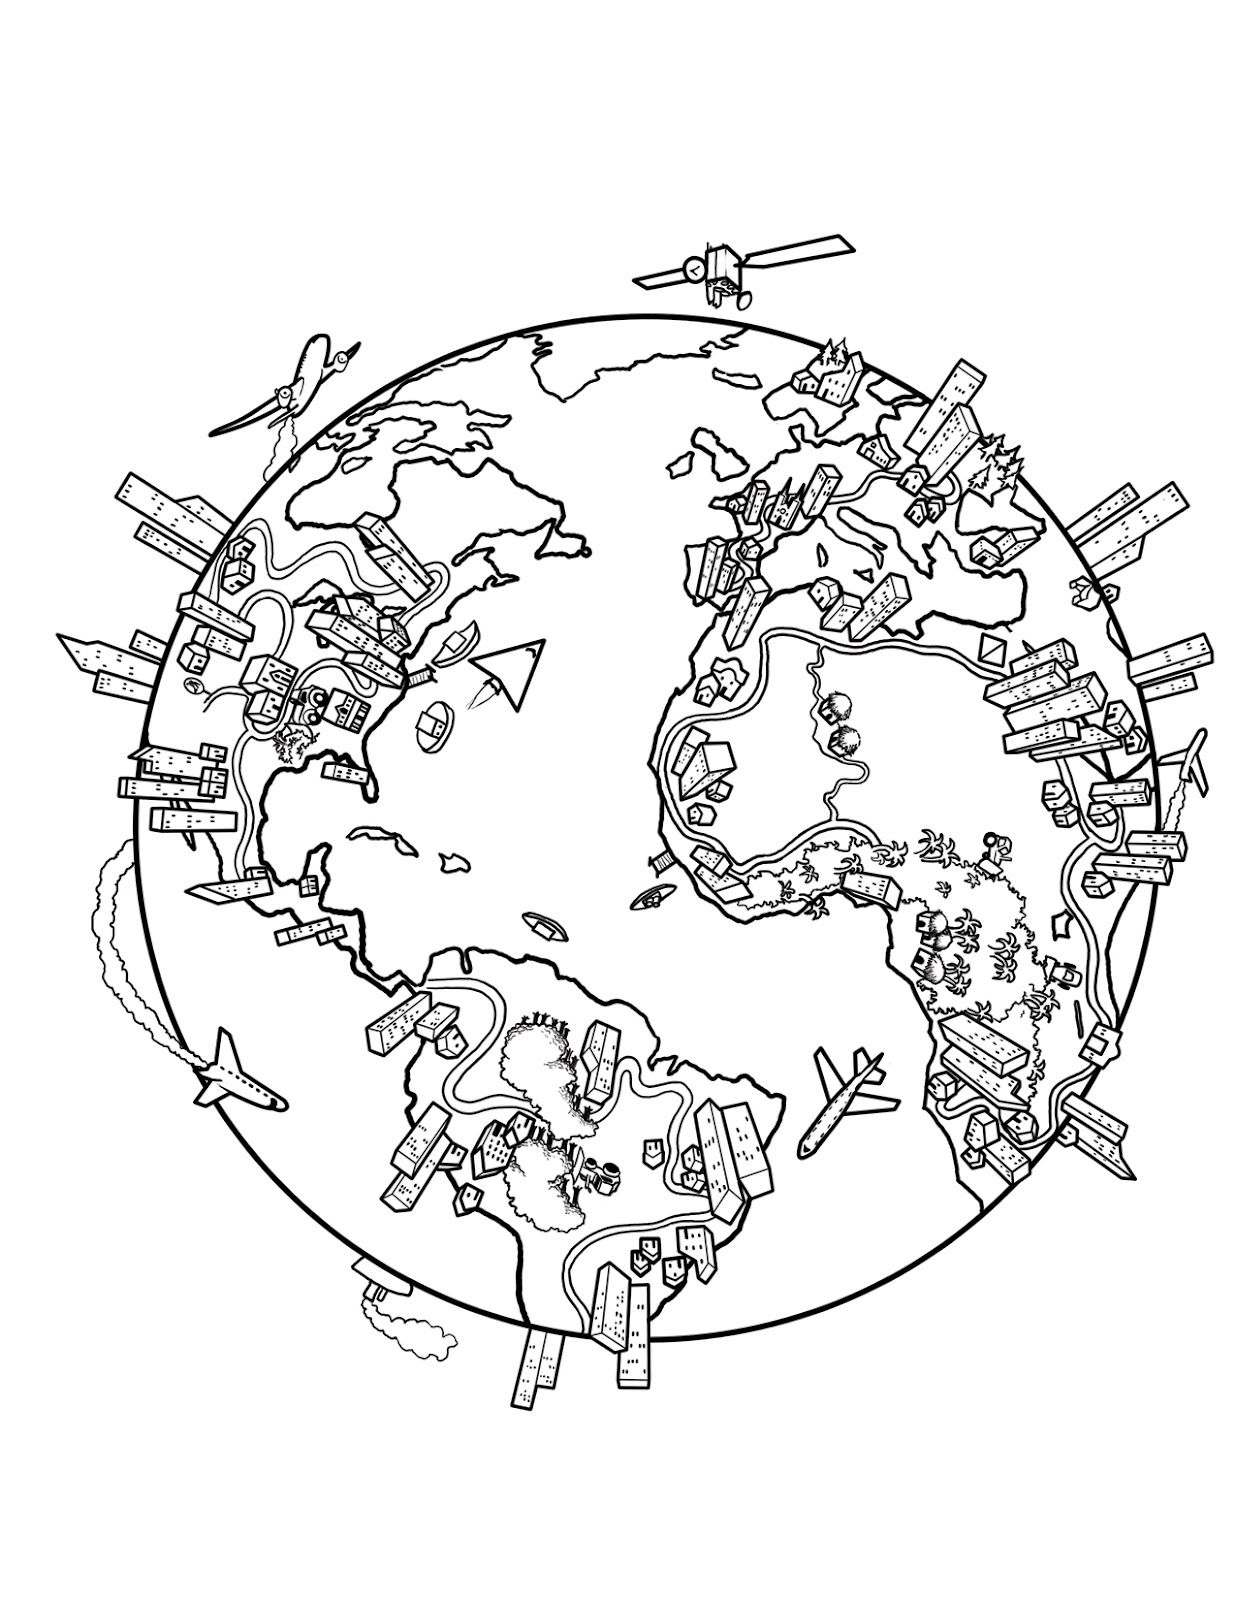 The World Coloring Page